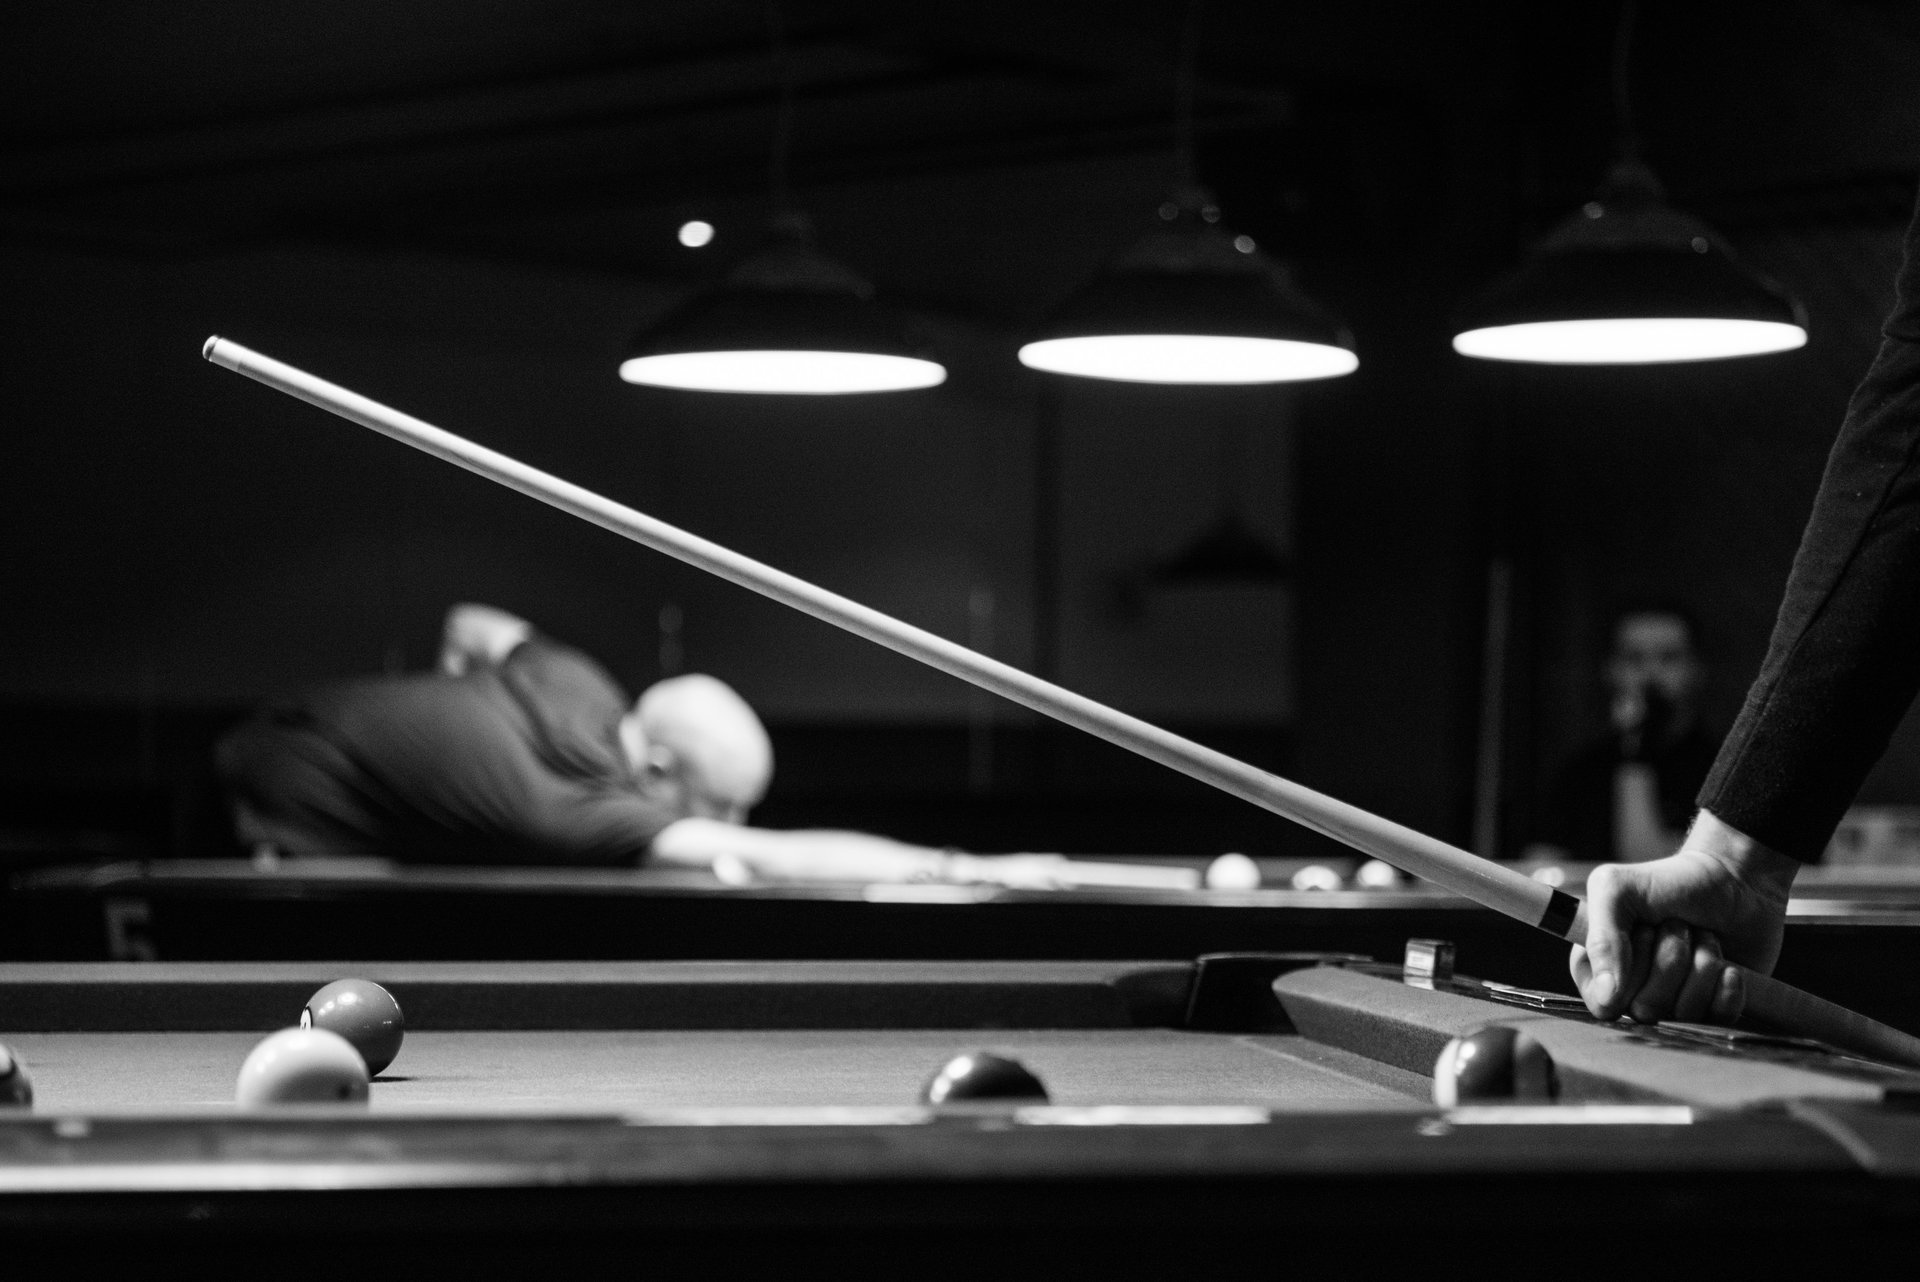 Pool Table Billiard Table Ultimate Buying Guide - How to move a pool table a few feet